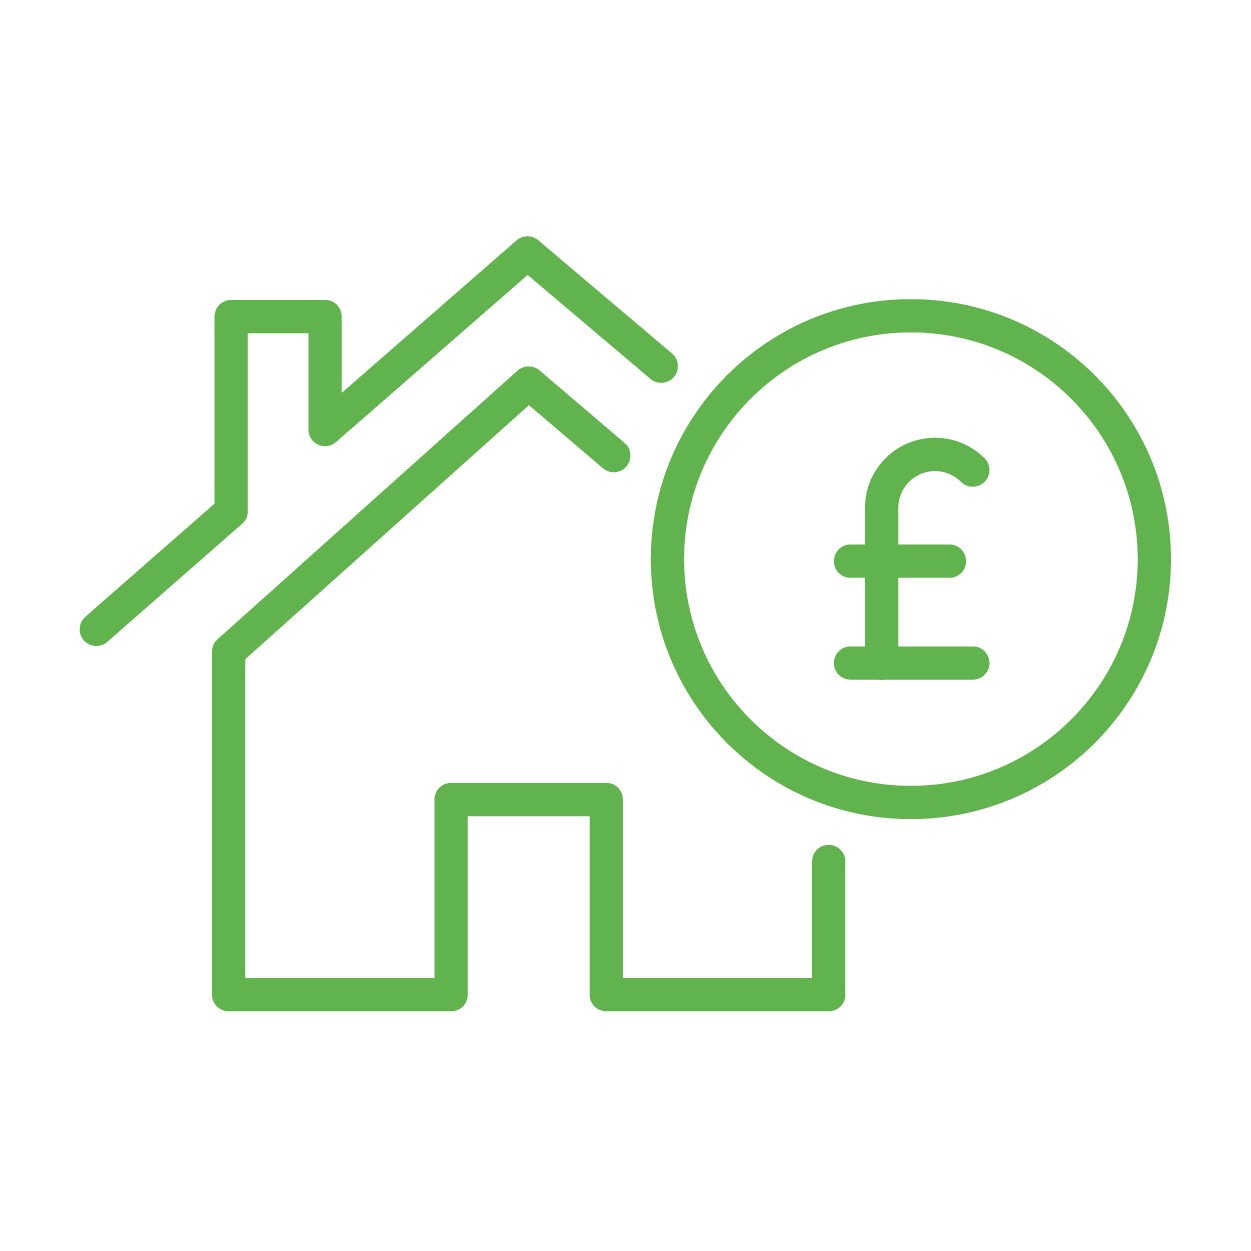 Valuation - You'll be introduced to your very own local Property Genius who'll be able to answer any questions you have and provide you with a valuation. It's the first step to getting to know you and your needs